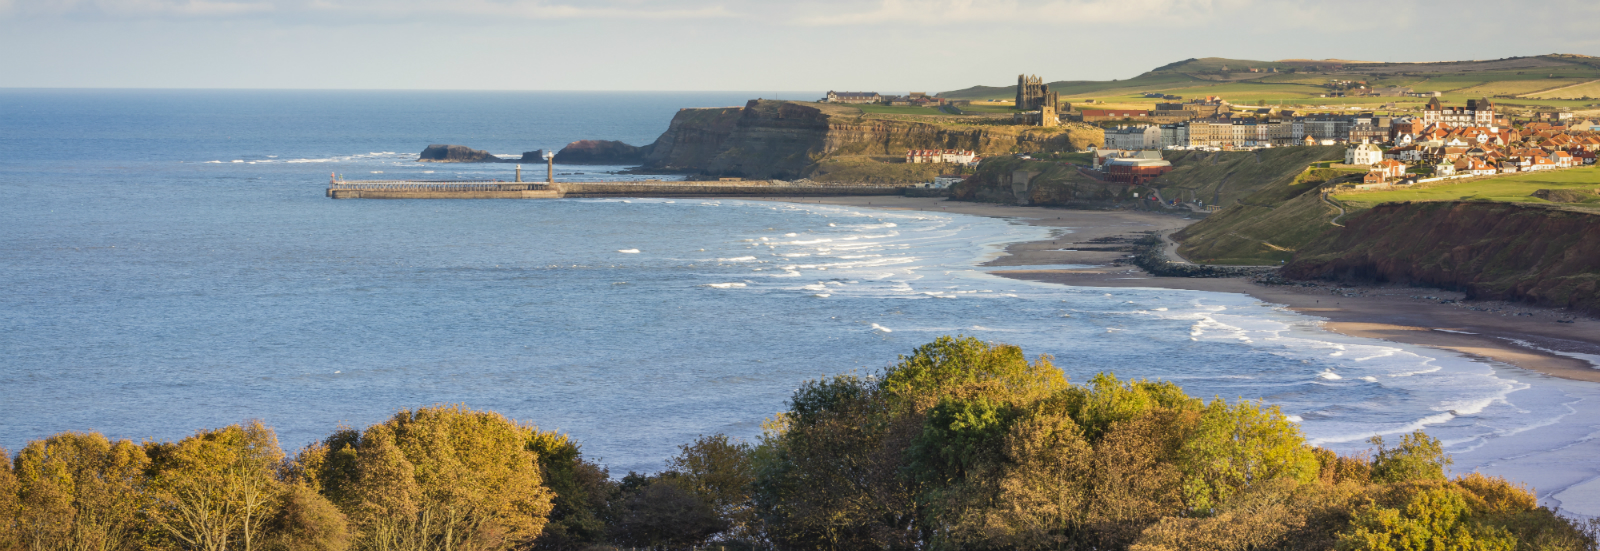 Spring stay in Whitby